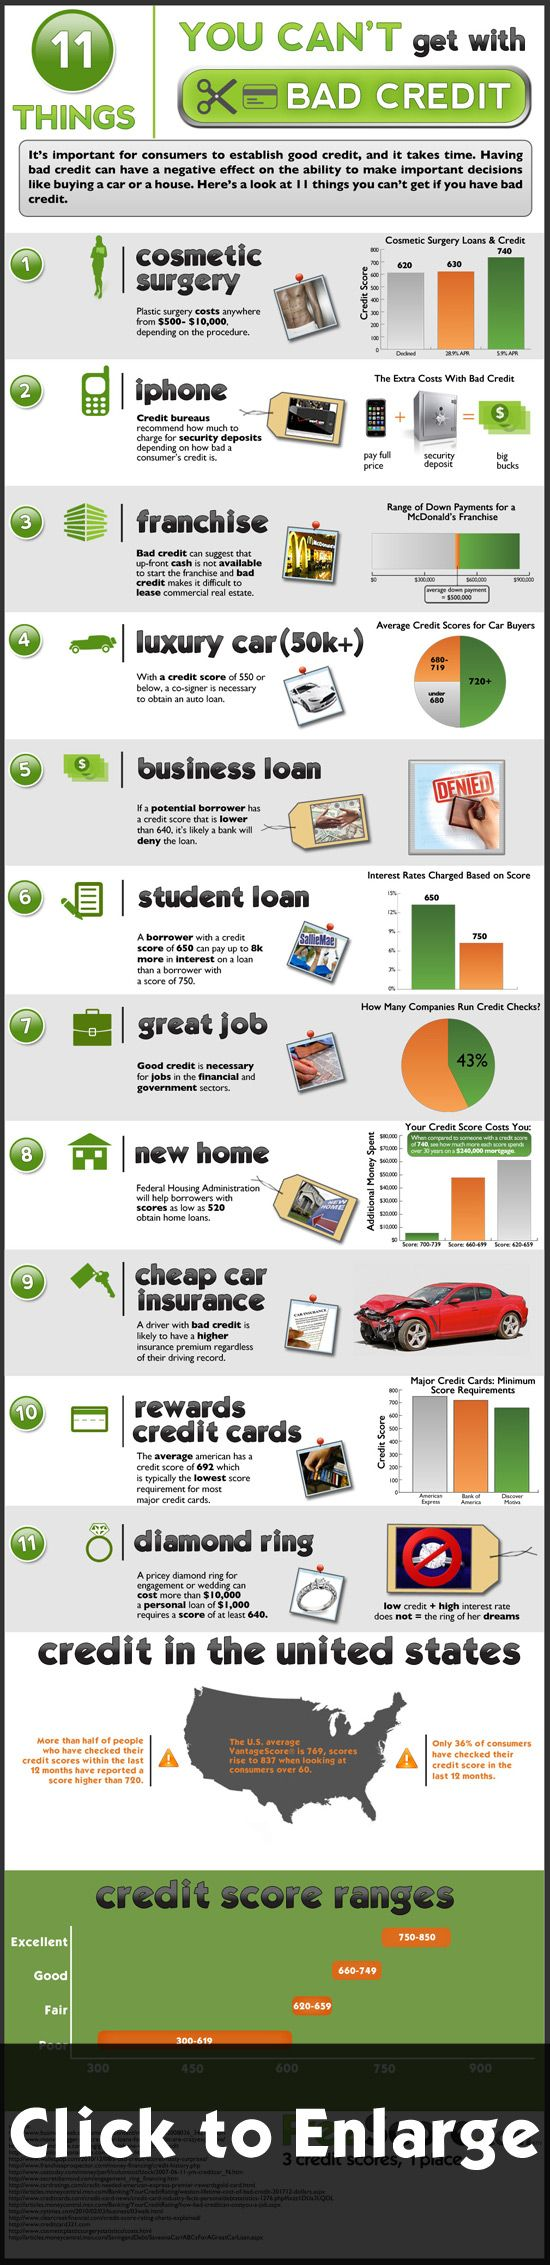 Is The Economy Making Americans Bankrupt 11 Things You Can T Get